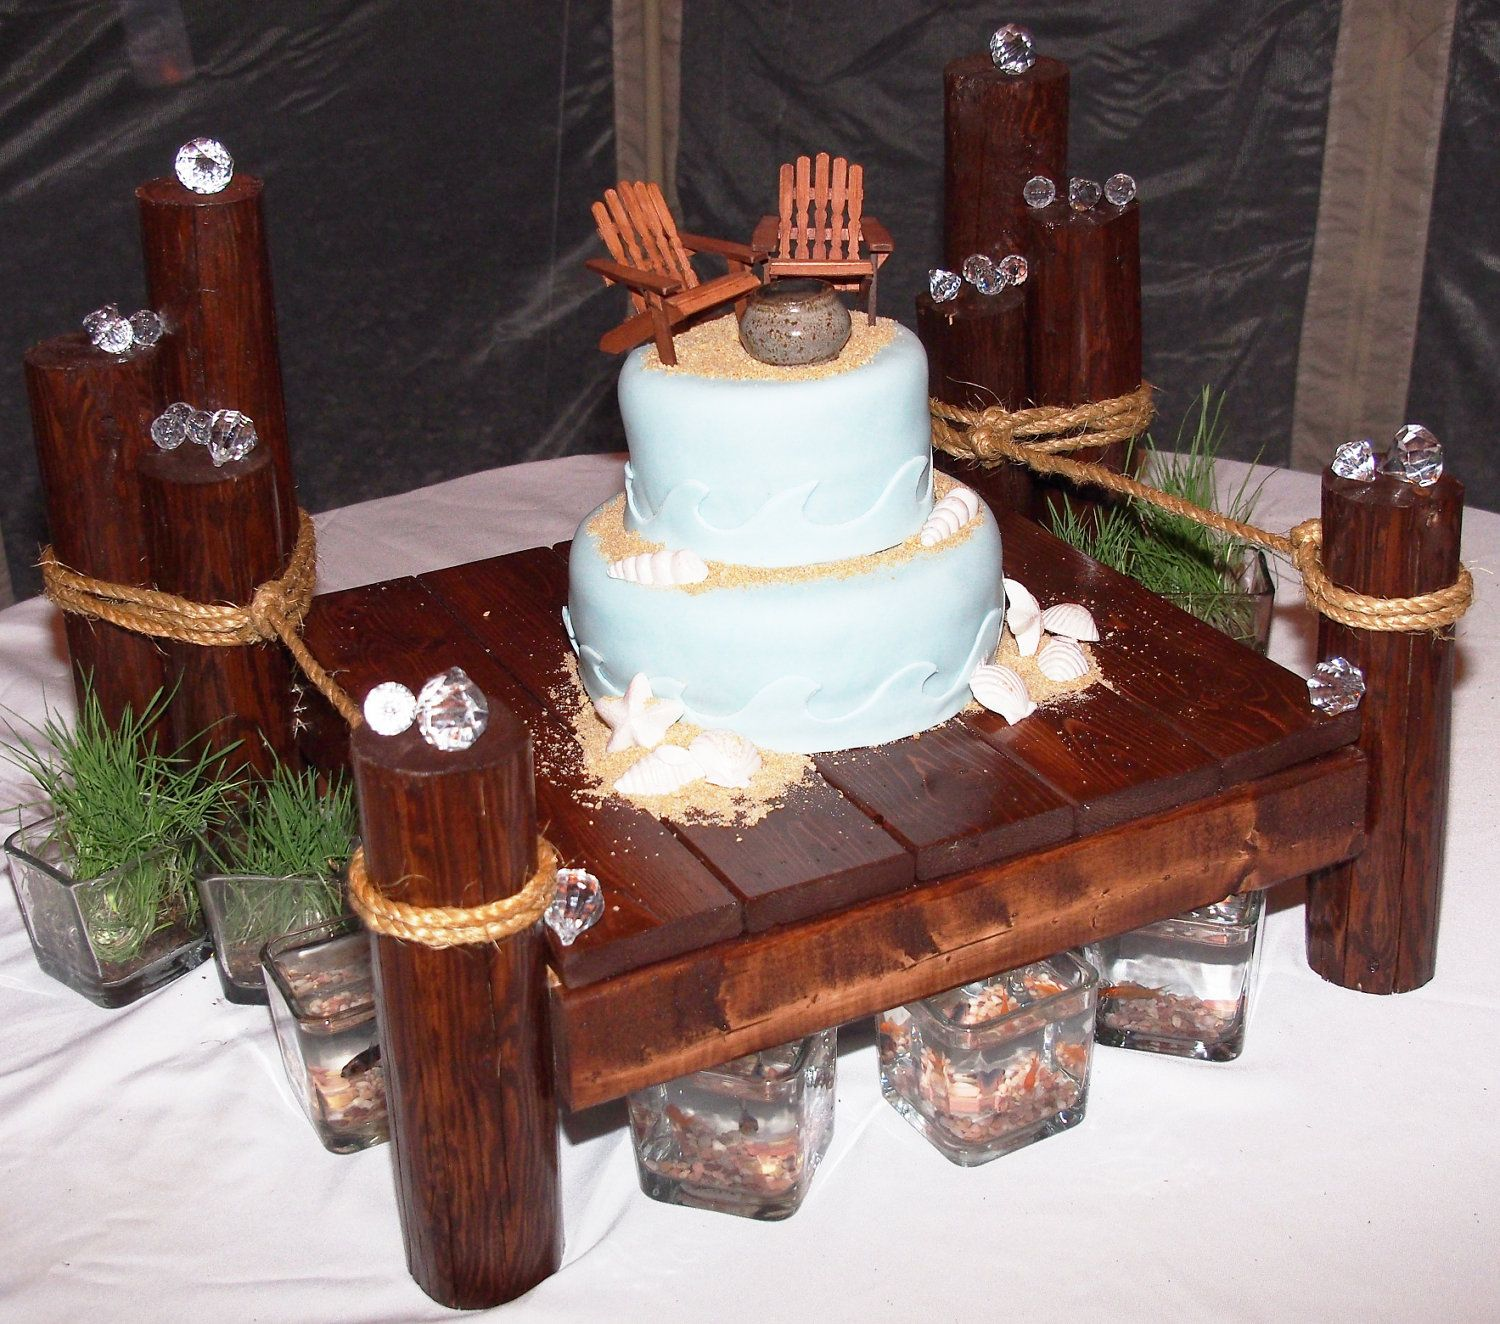 Lake Wedding Ideas: Pier Style Cake Stand For Nautical, Beach, Boat And Lake